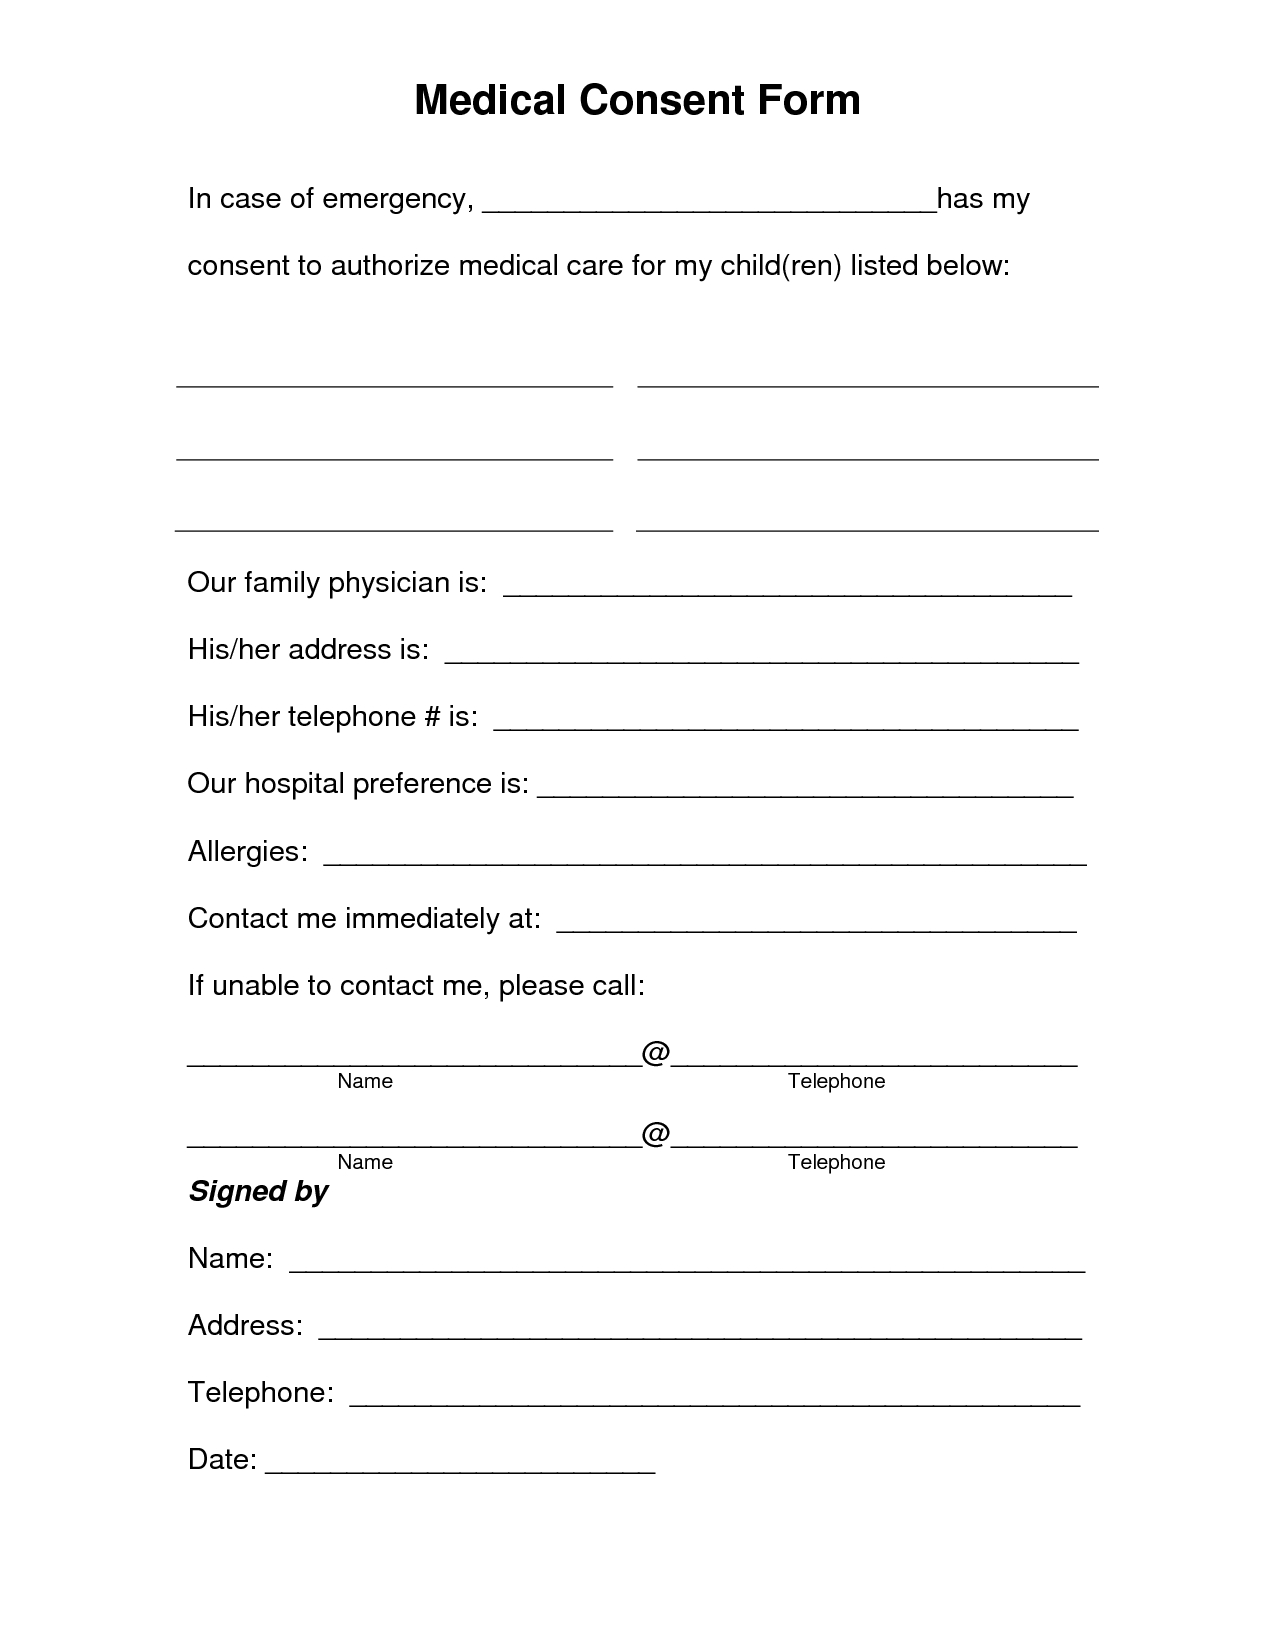 Free Printable Medical Consent Form | Free Medical Consent Form - Free Printable Daycare Forms